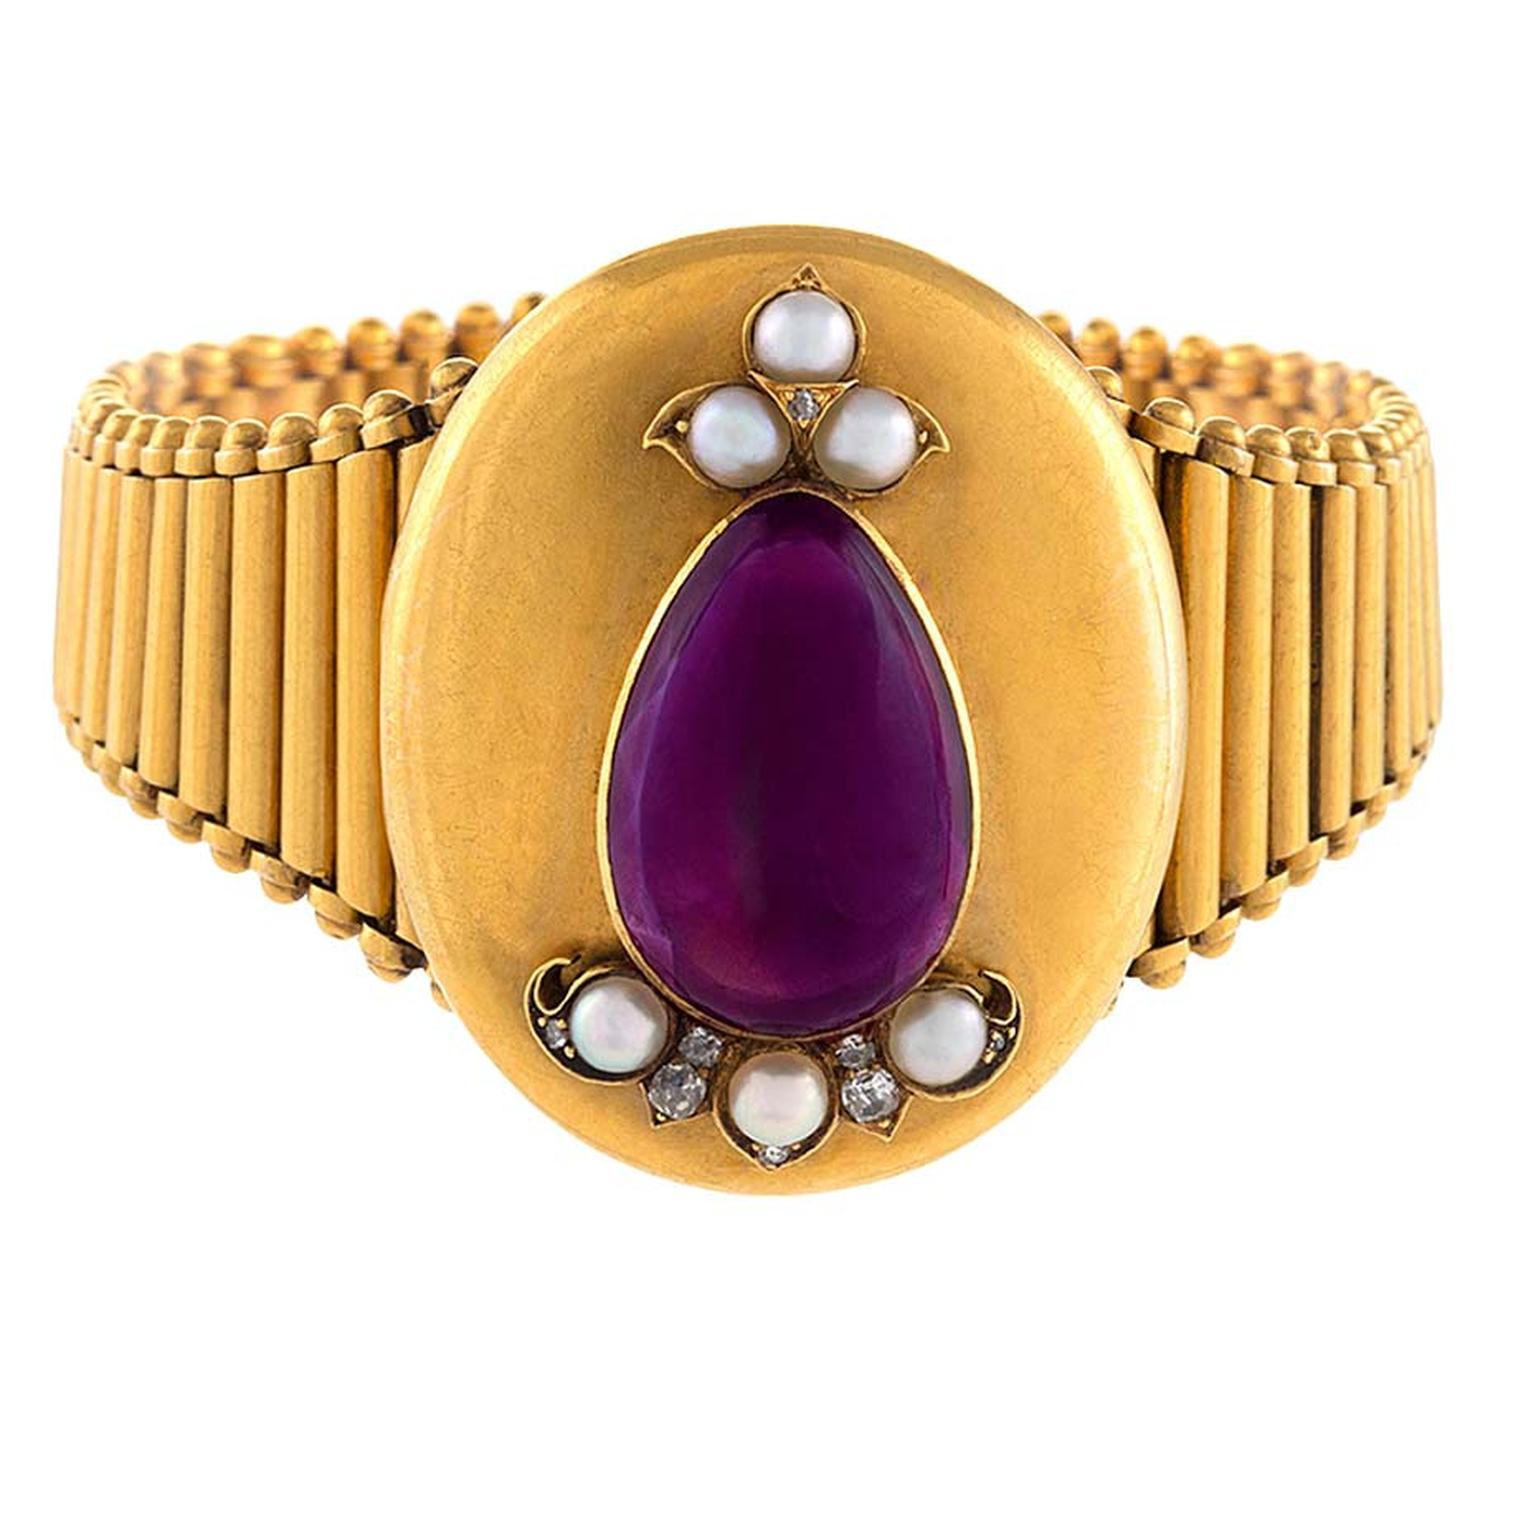 Victorian amethyst, pearl and diamond gold locket/bracelet. Available at1stdibs.com ($7,500).